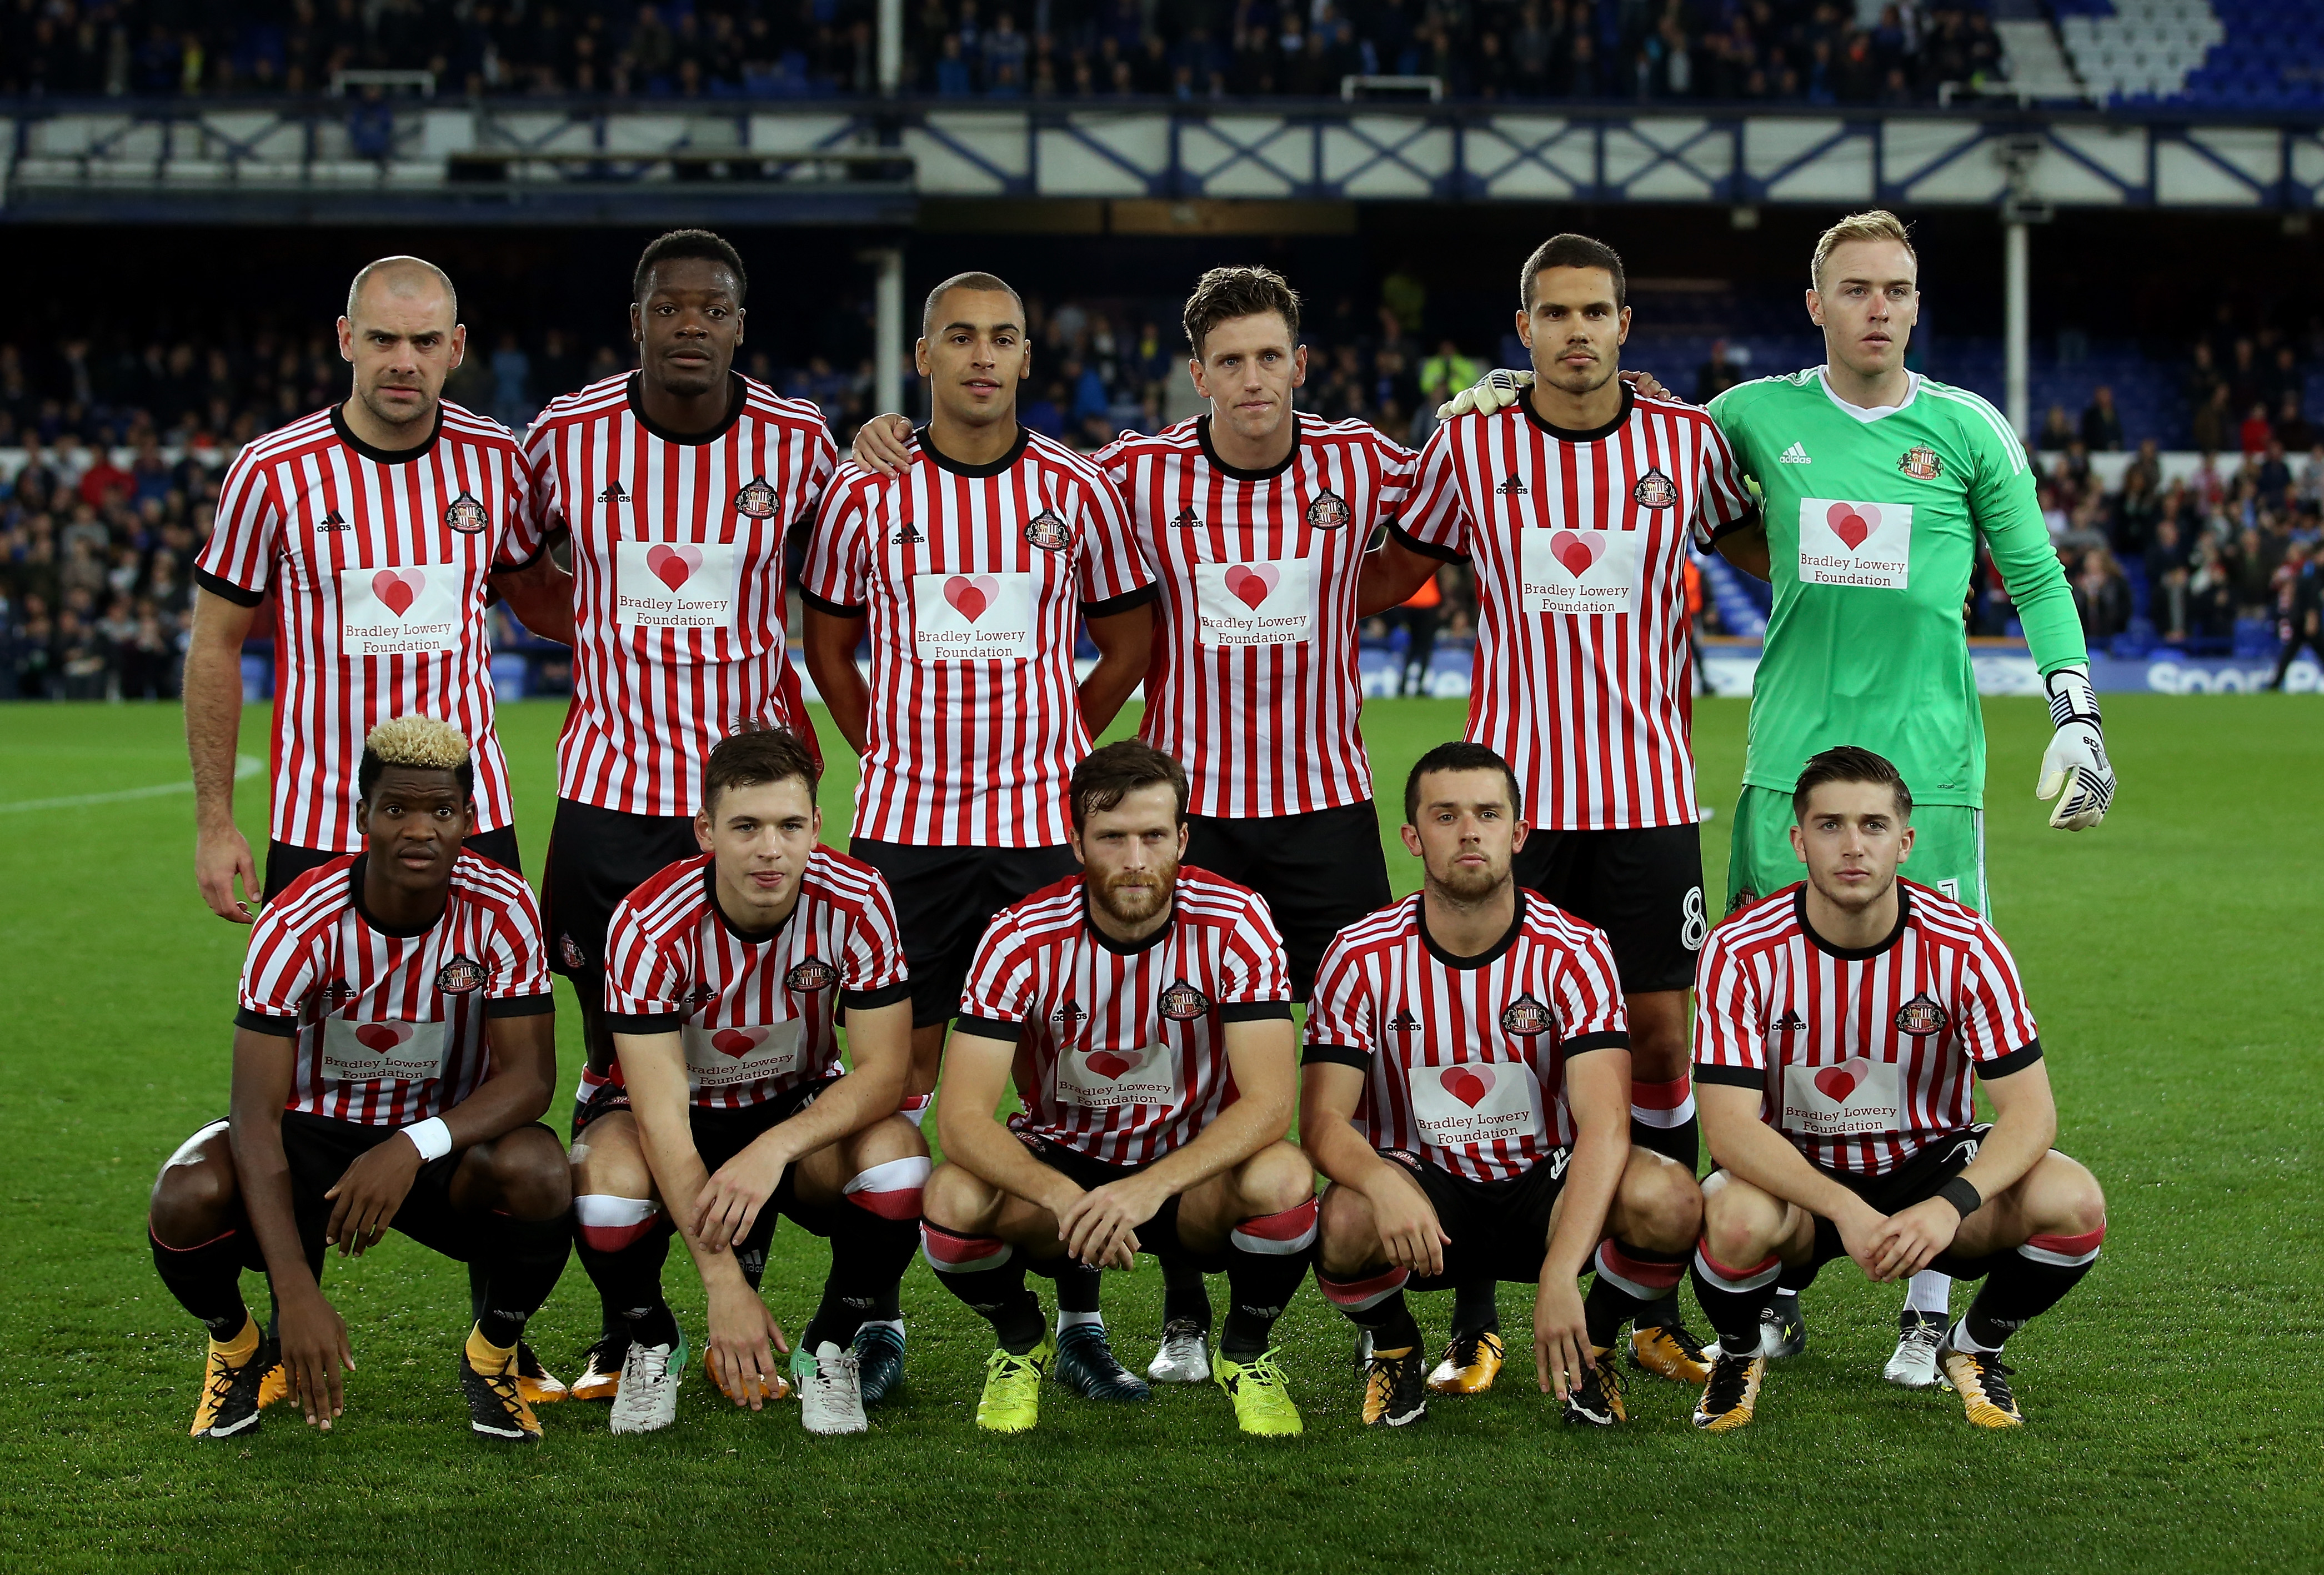 British safc football players have orgy with a brunette 5